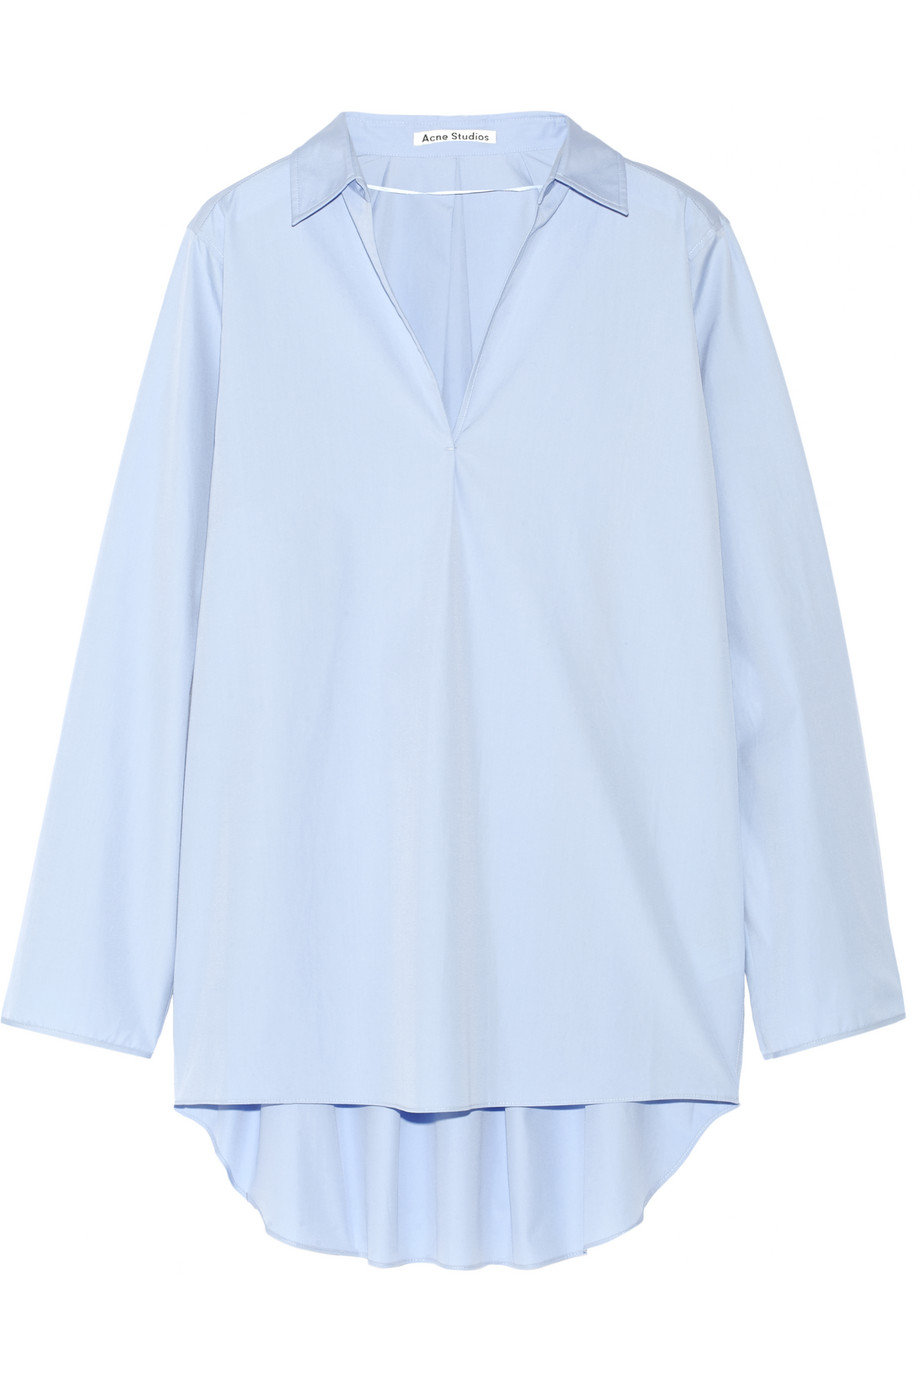 Acne Studios Lain Oversized Cotton-Poplin Top, Sky Blue, Women's, Size: 32